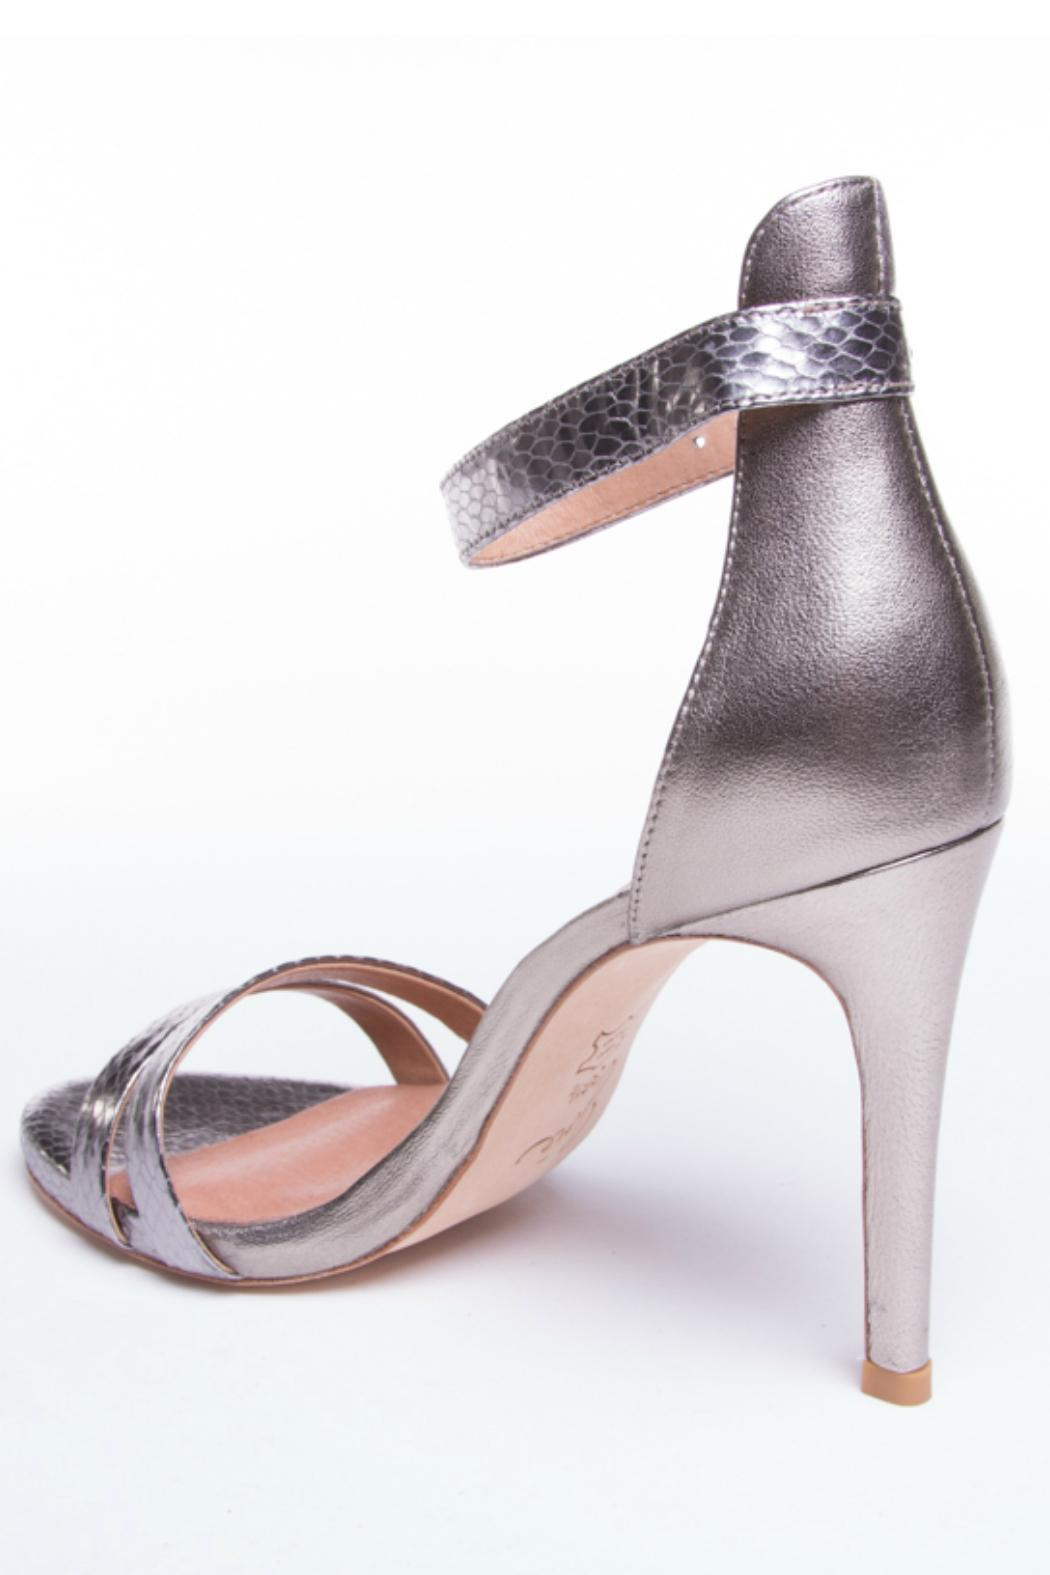 Pewter High Heeled Shoes And Bags Occasion